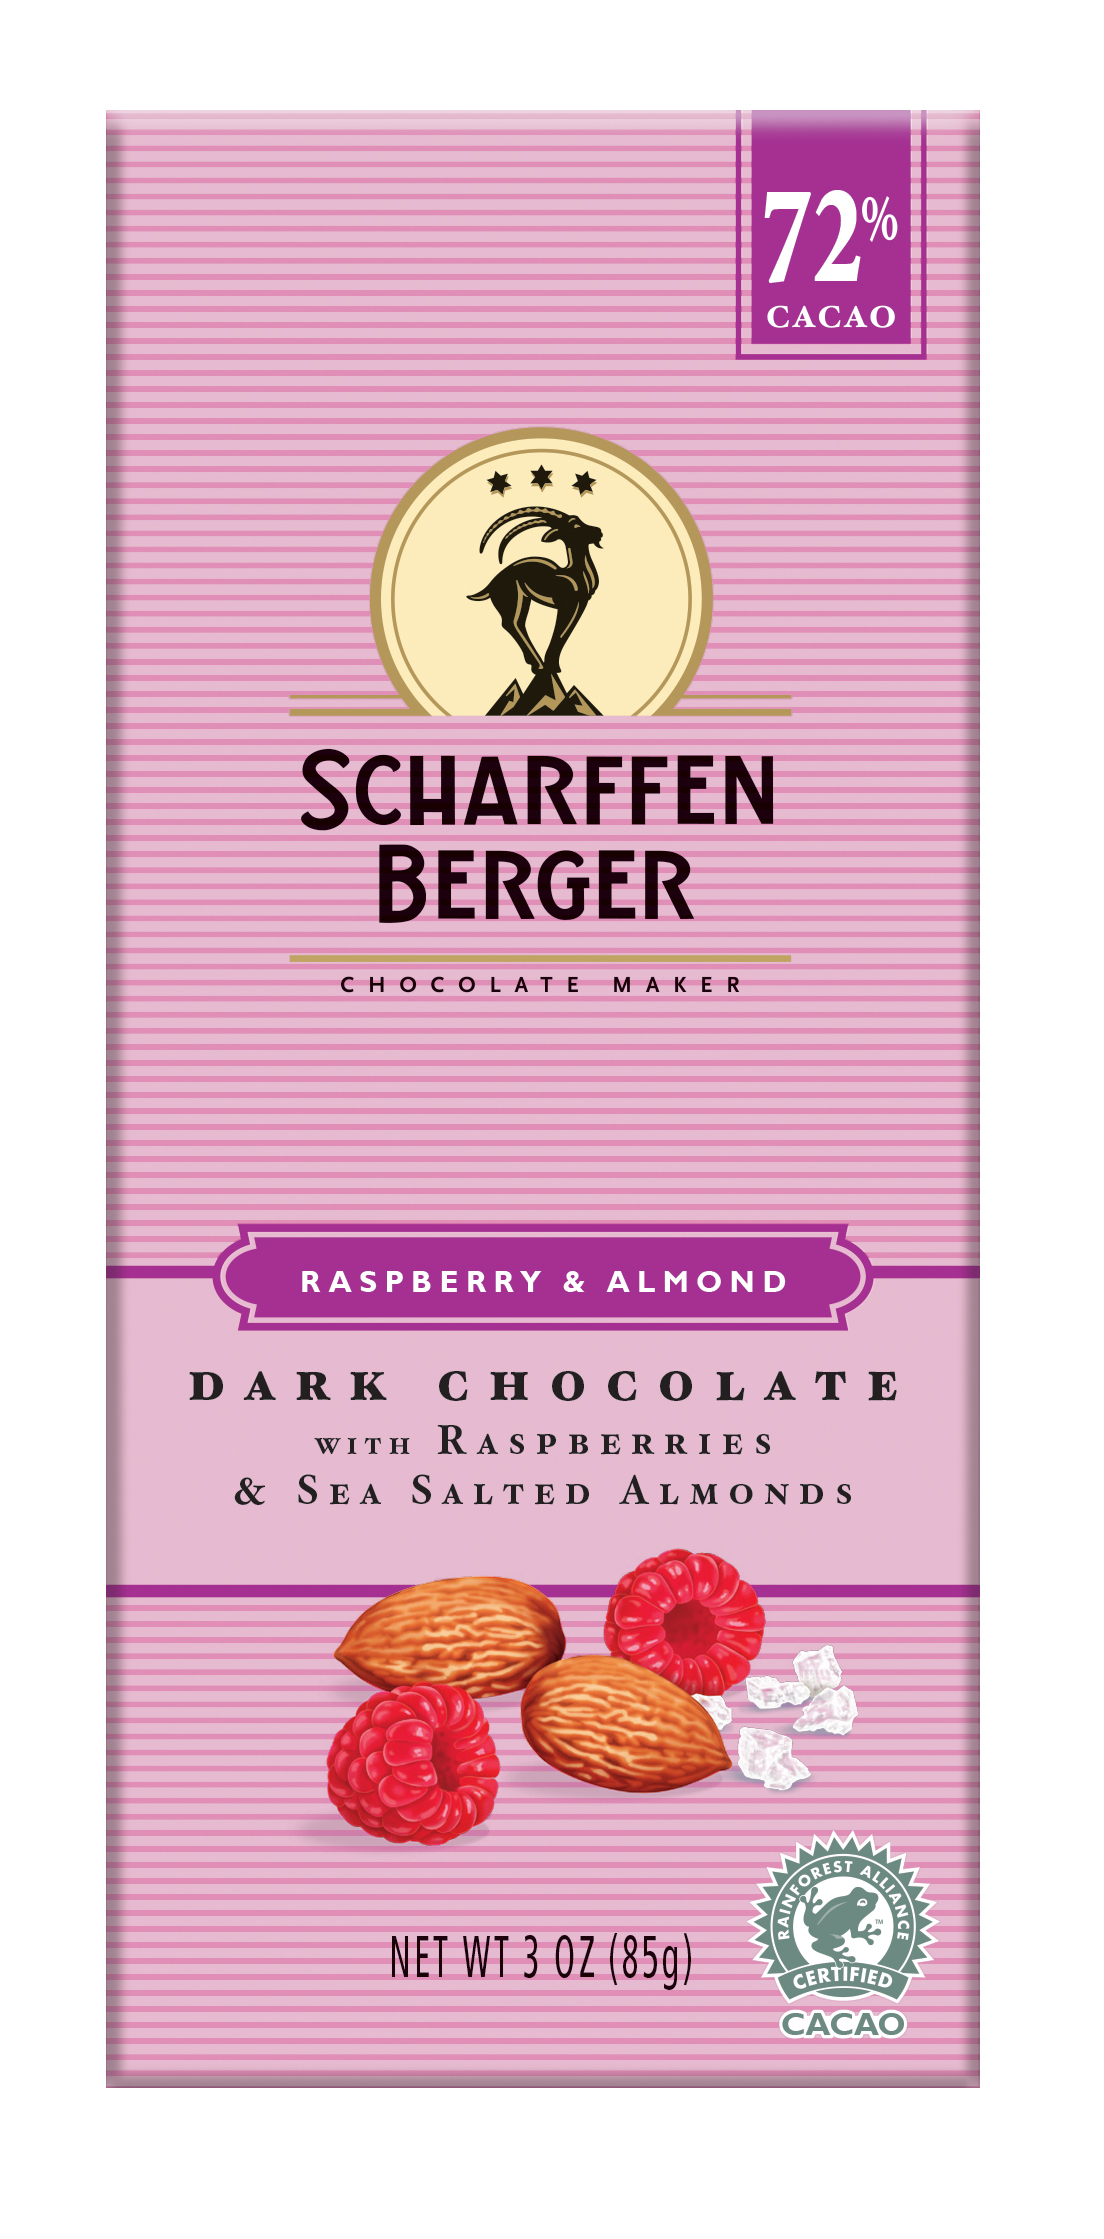 scharffen berger chocolate maker 2 essay Introduction this case aims to analyze the production process of the chocolate maker scharffen berger, and how different implementation of change can increase or decrease the capacity of output scharffen berger, founded in 1996 in barkely, california, is a company active within the premium segment of the chocolate industry.